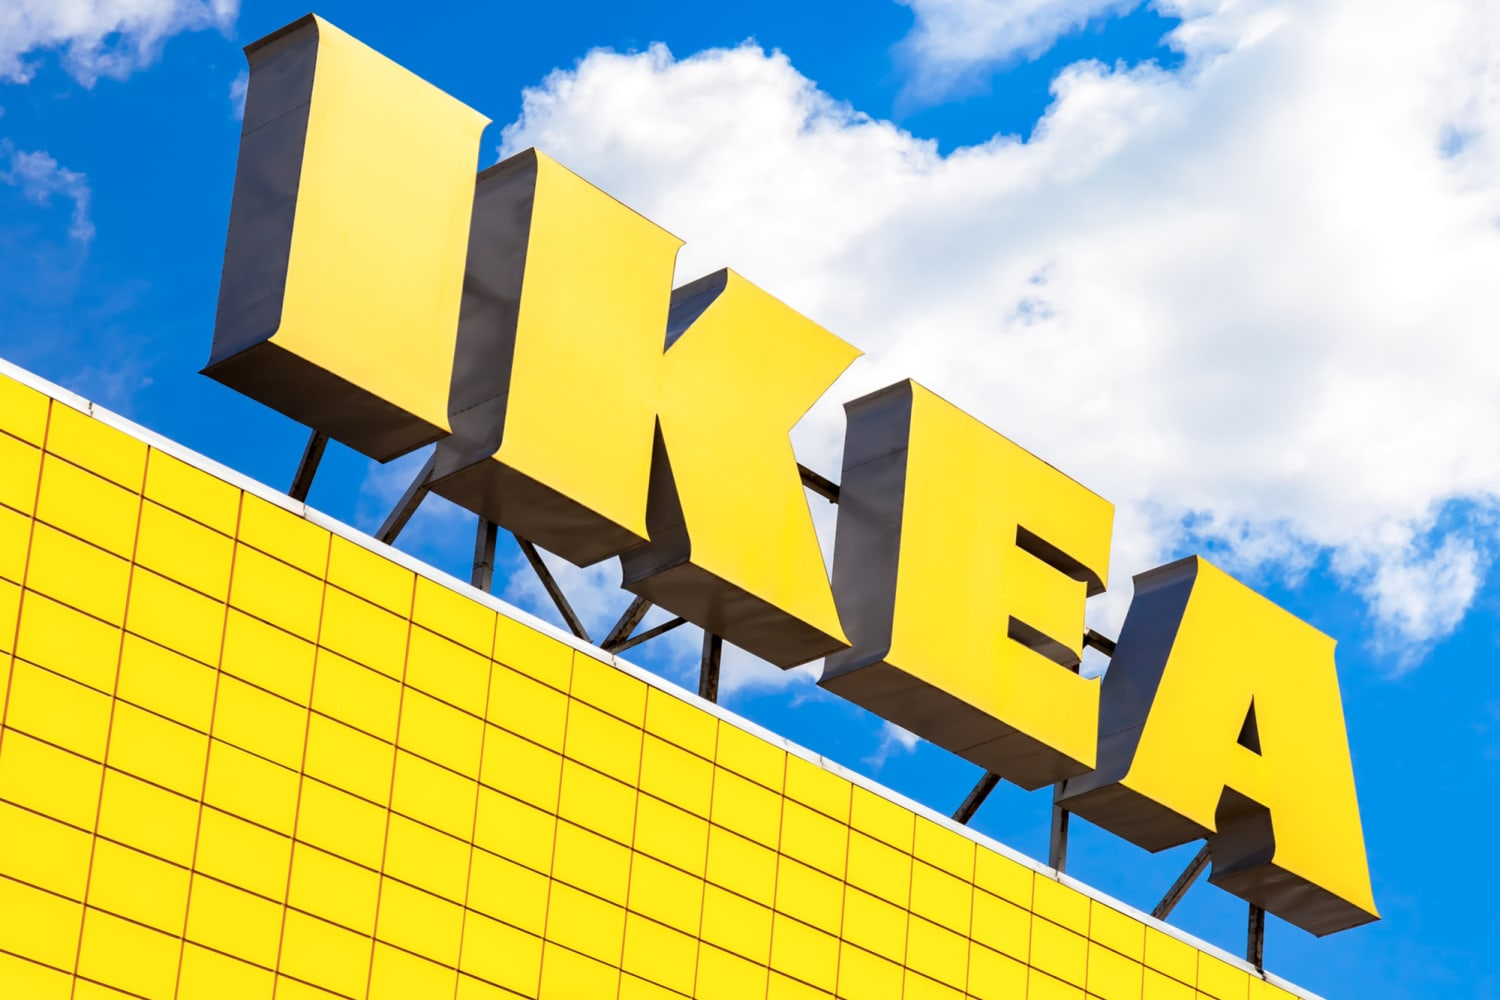 IKEA Hacks Itself to Make Furniture More Accessible for Those with Disabilities